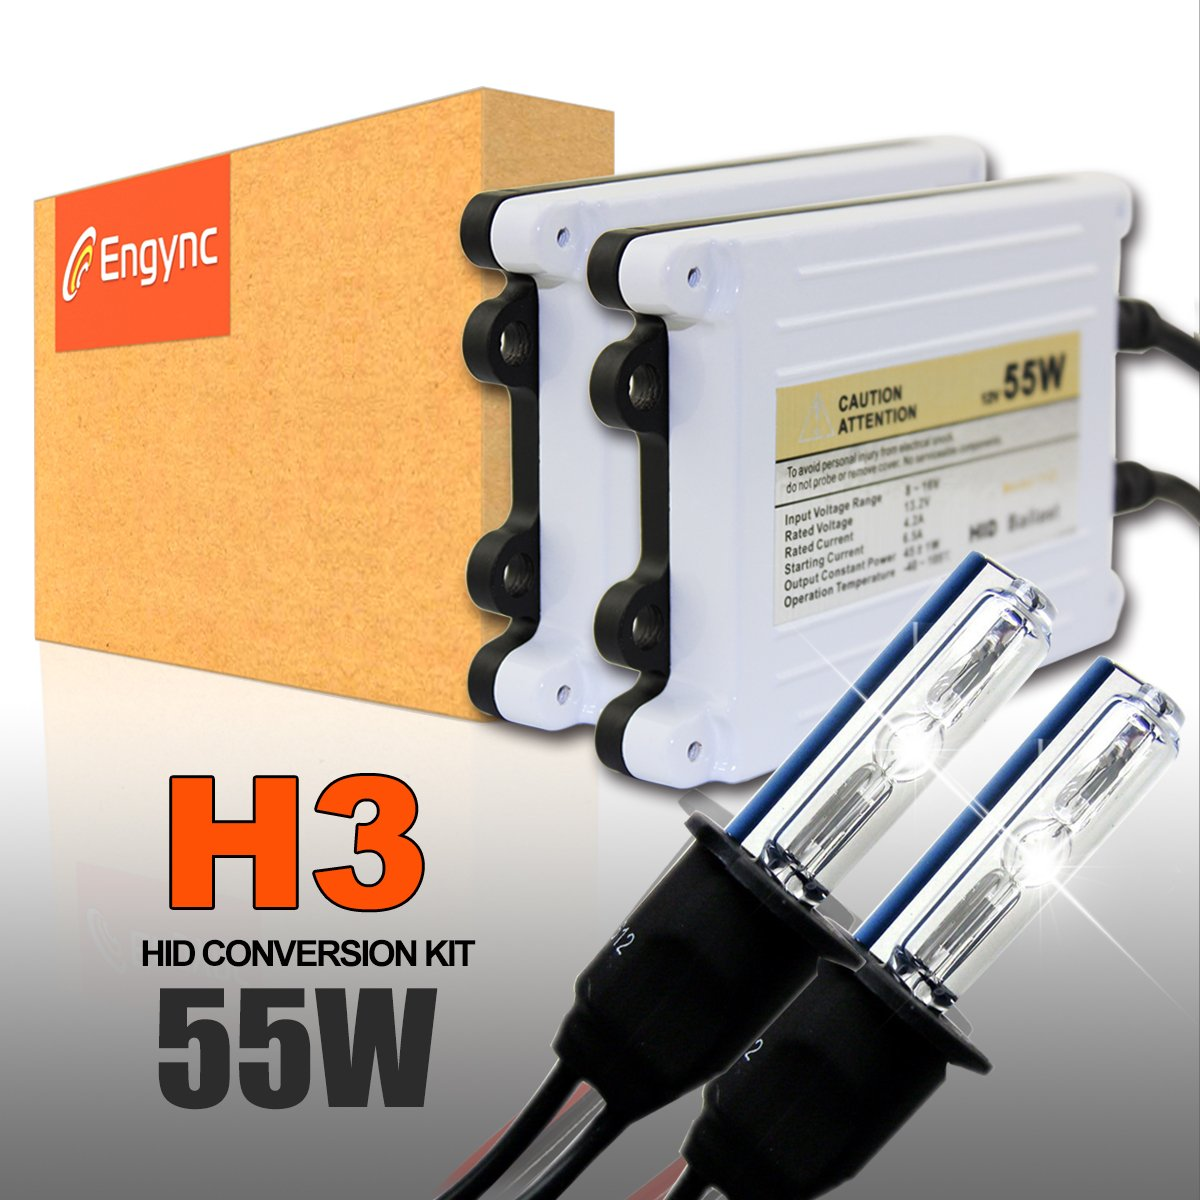 Engync® 55W AC H13 (9008) Bi-Xenon Xenon HID Conversion Kit with Premium Ballasts and 3 Year Warranty | Hi/Low Diamond White/Hyper White/Pure White Color (6000K)